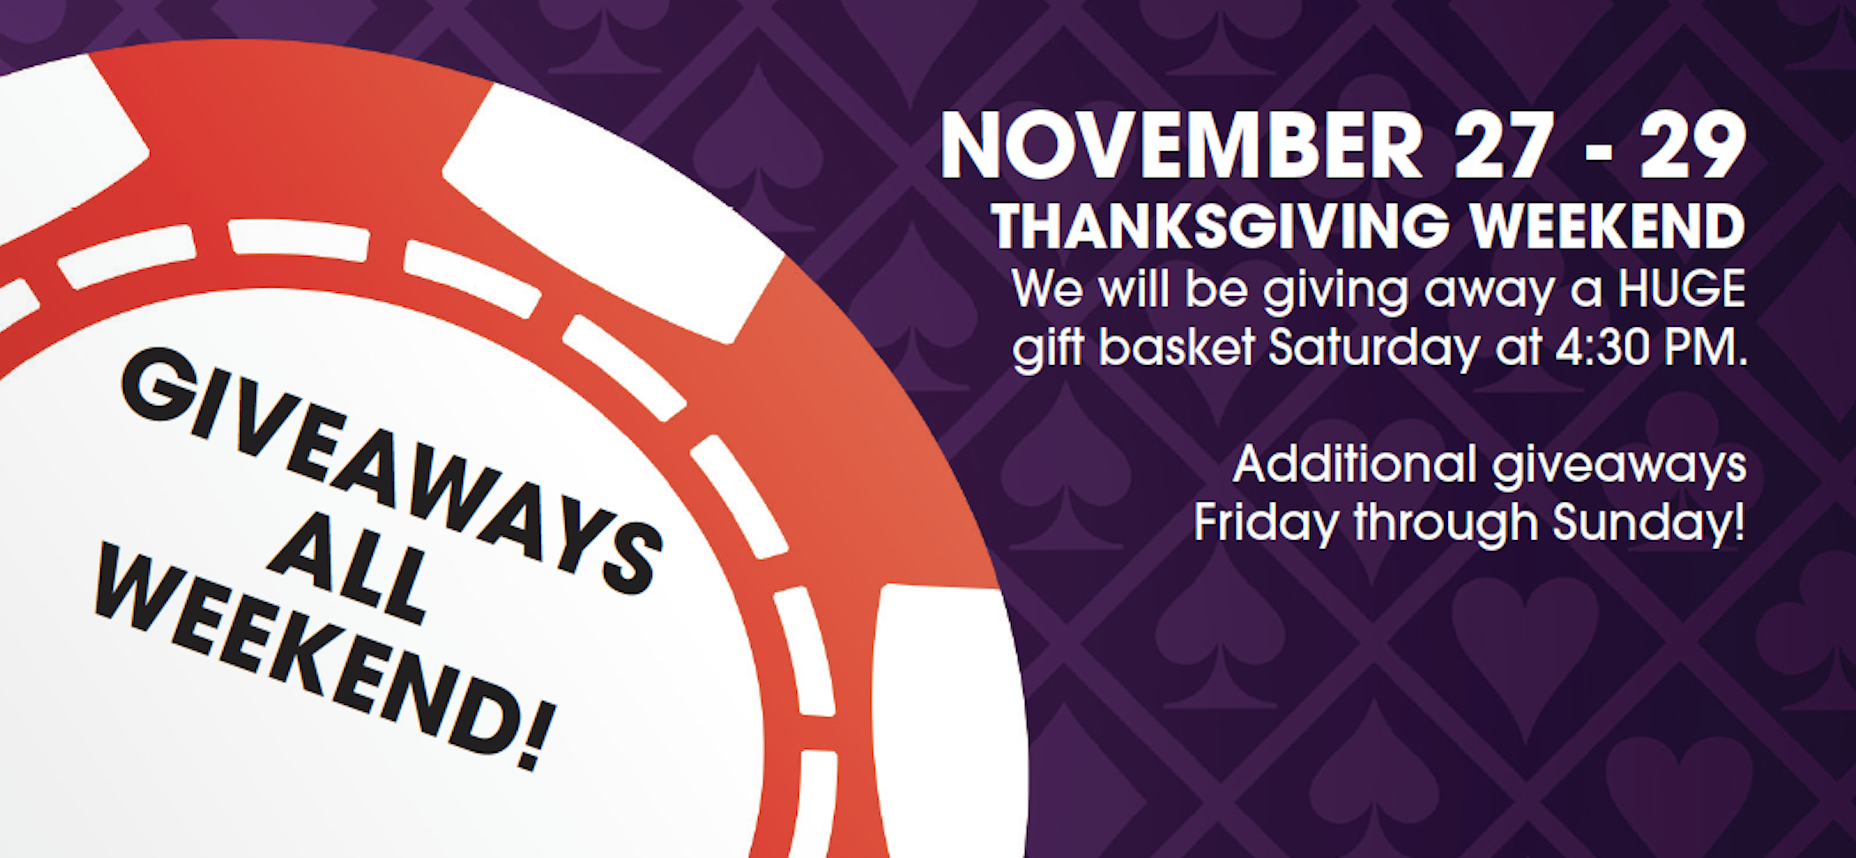 November 27-29 Thanksgiving Specials